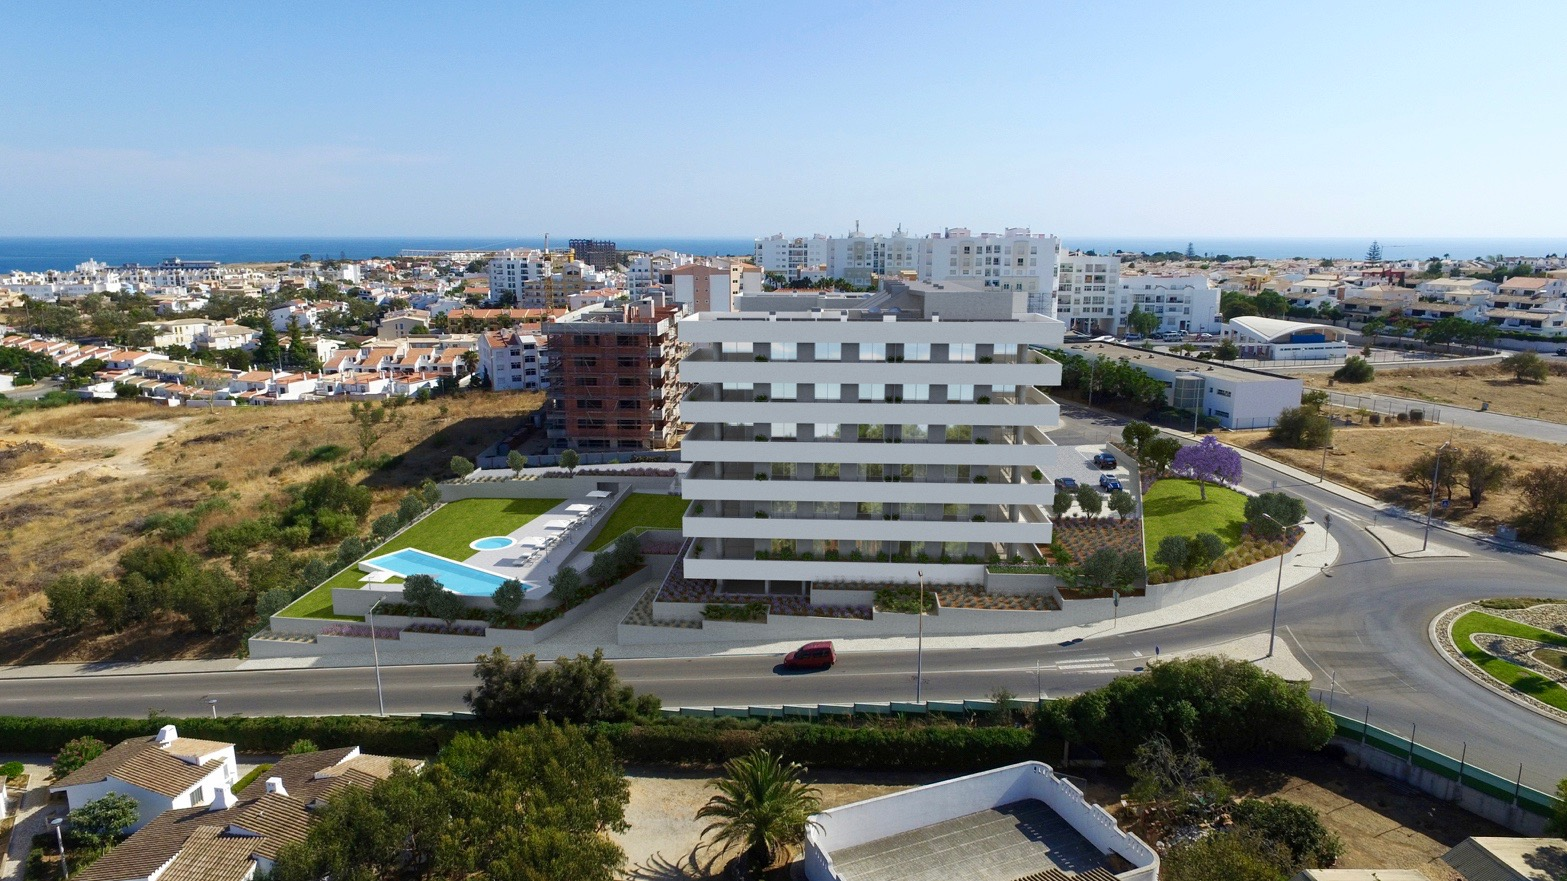 Portugal in pictures Luxury 3 bedroom apartment with sea views in Lagos  - Apartments